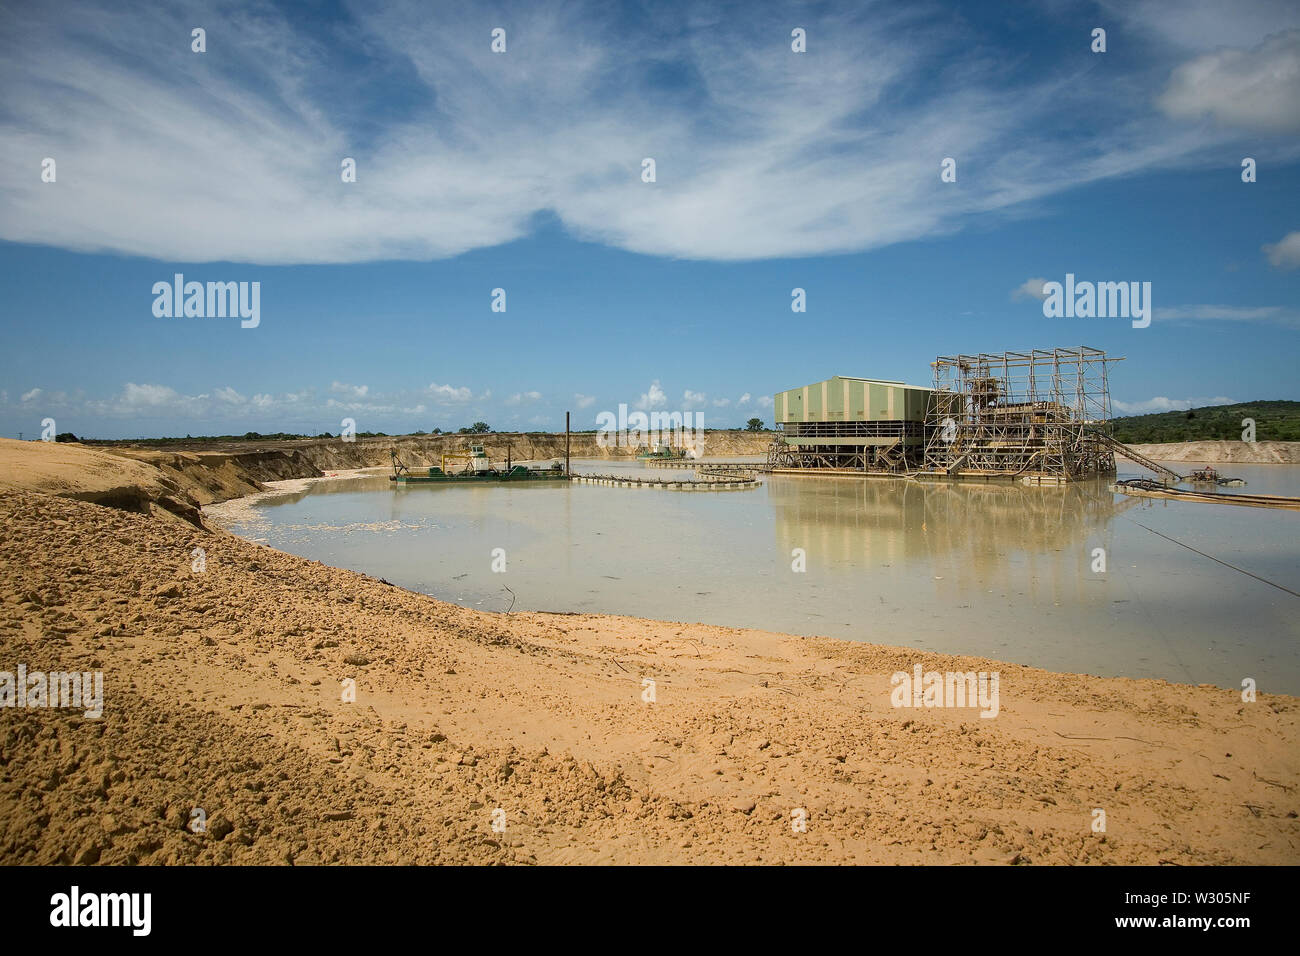 Managing & transporting of titanium mineral sands at mine site.  Mining by dredging in freshwater pond. Dredges pump sand into wet concentrator plant. Stock Photo